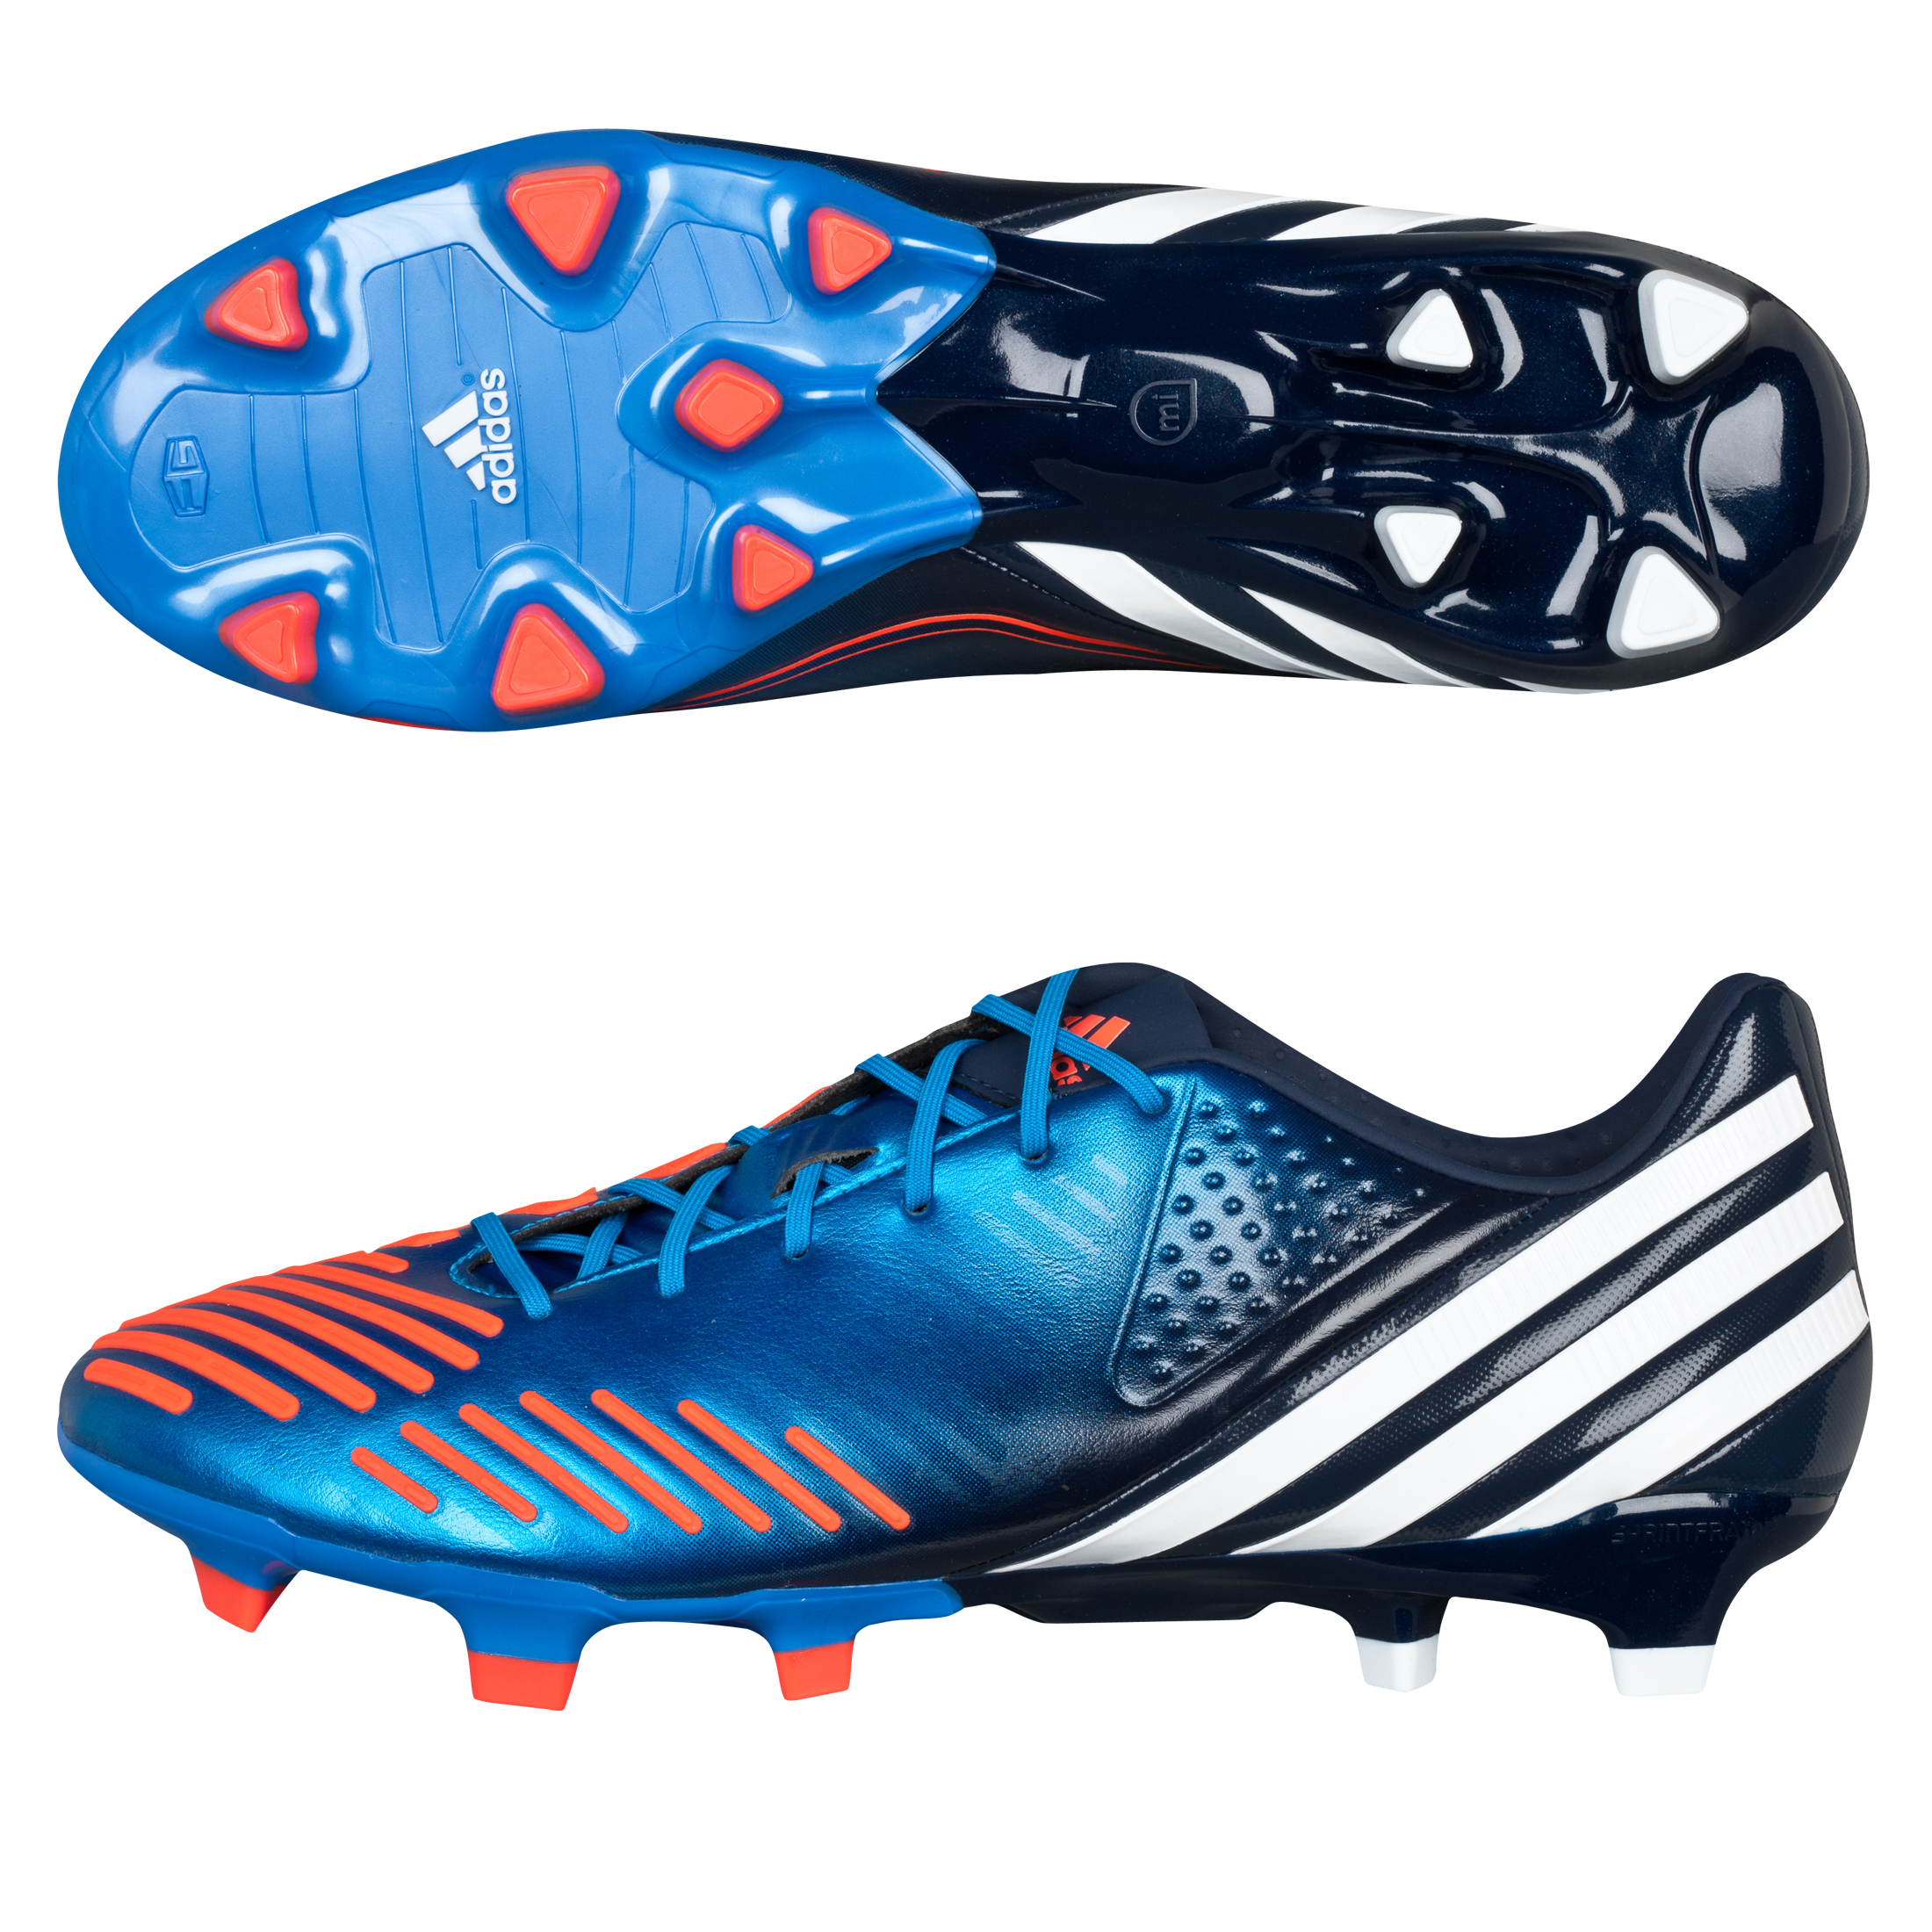 Adidas Predator LZ TRX Firm Ground Football Boots - Bright Blue/Running White/Infrared